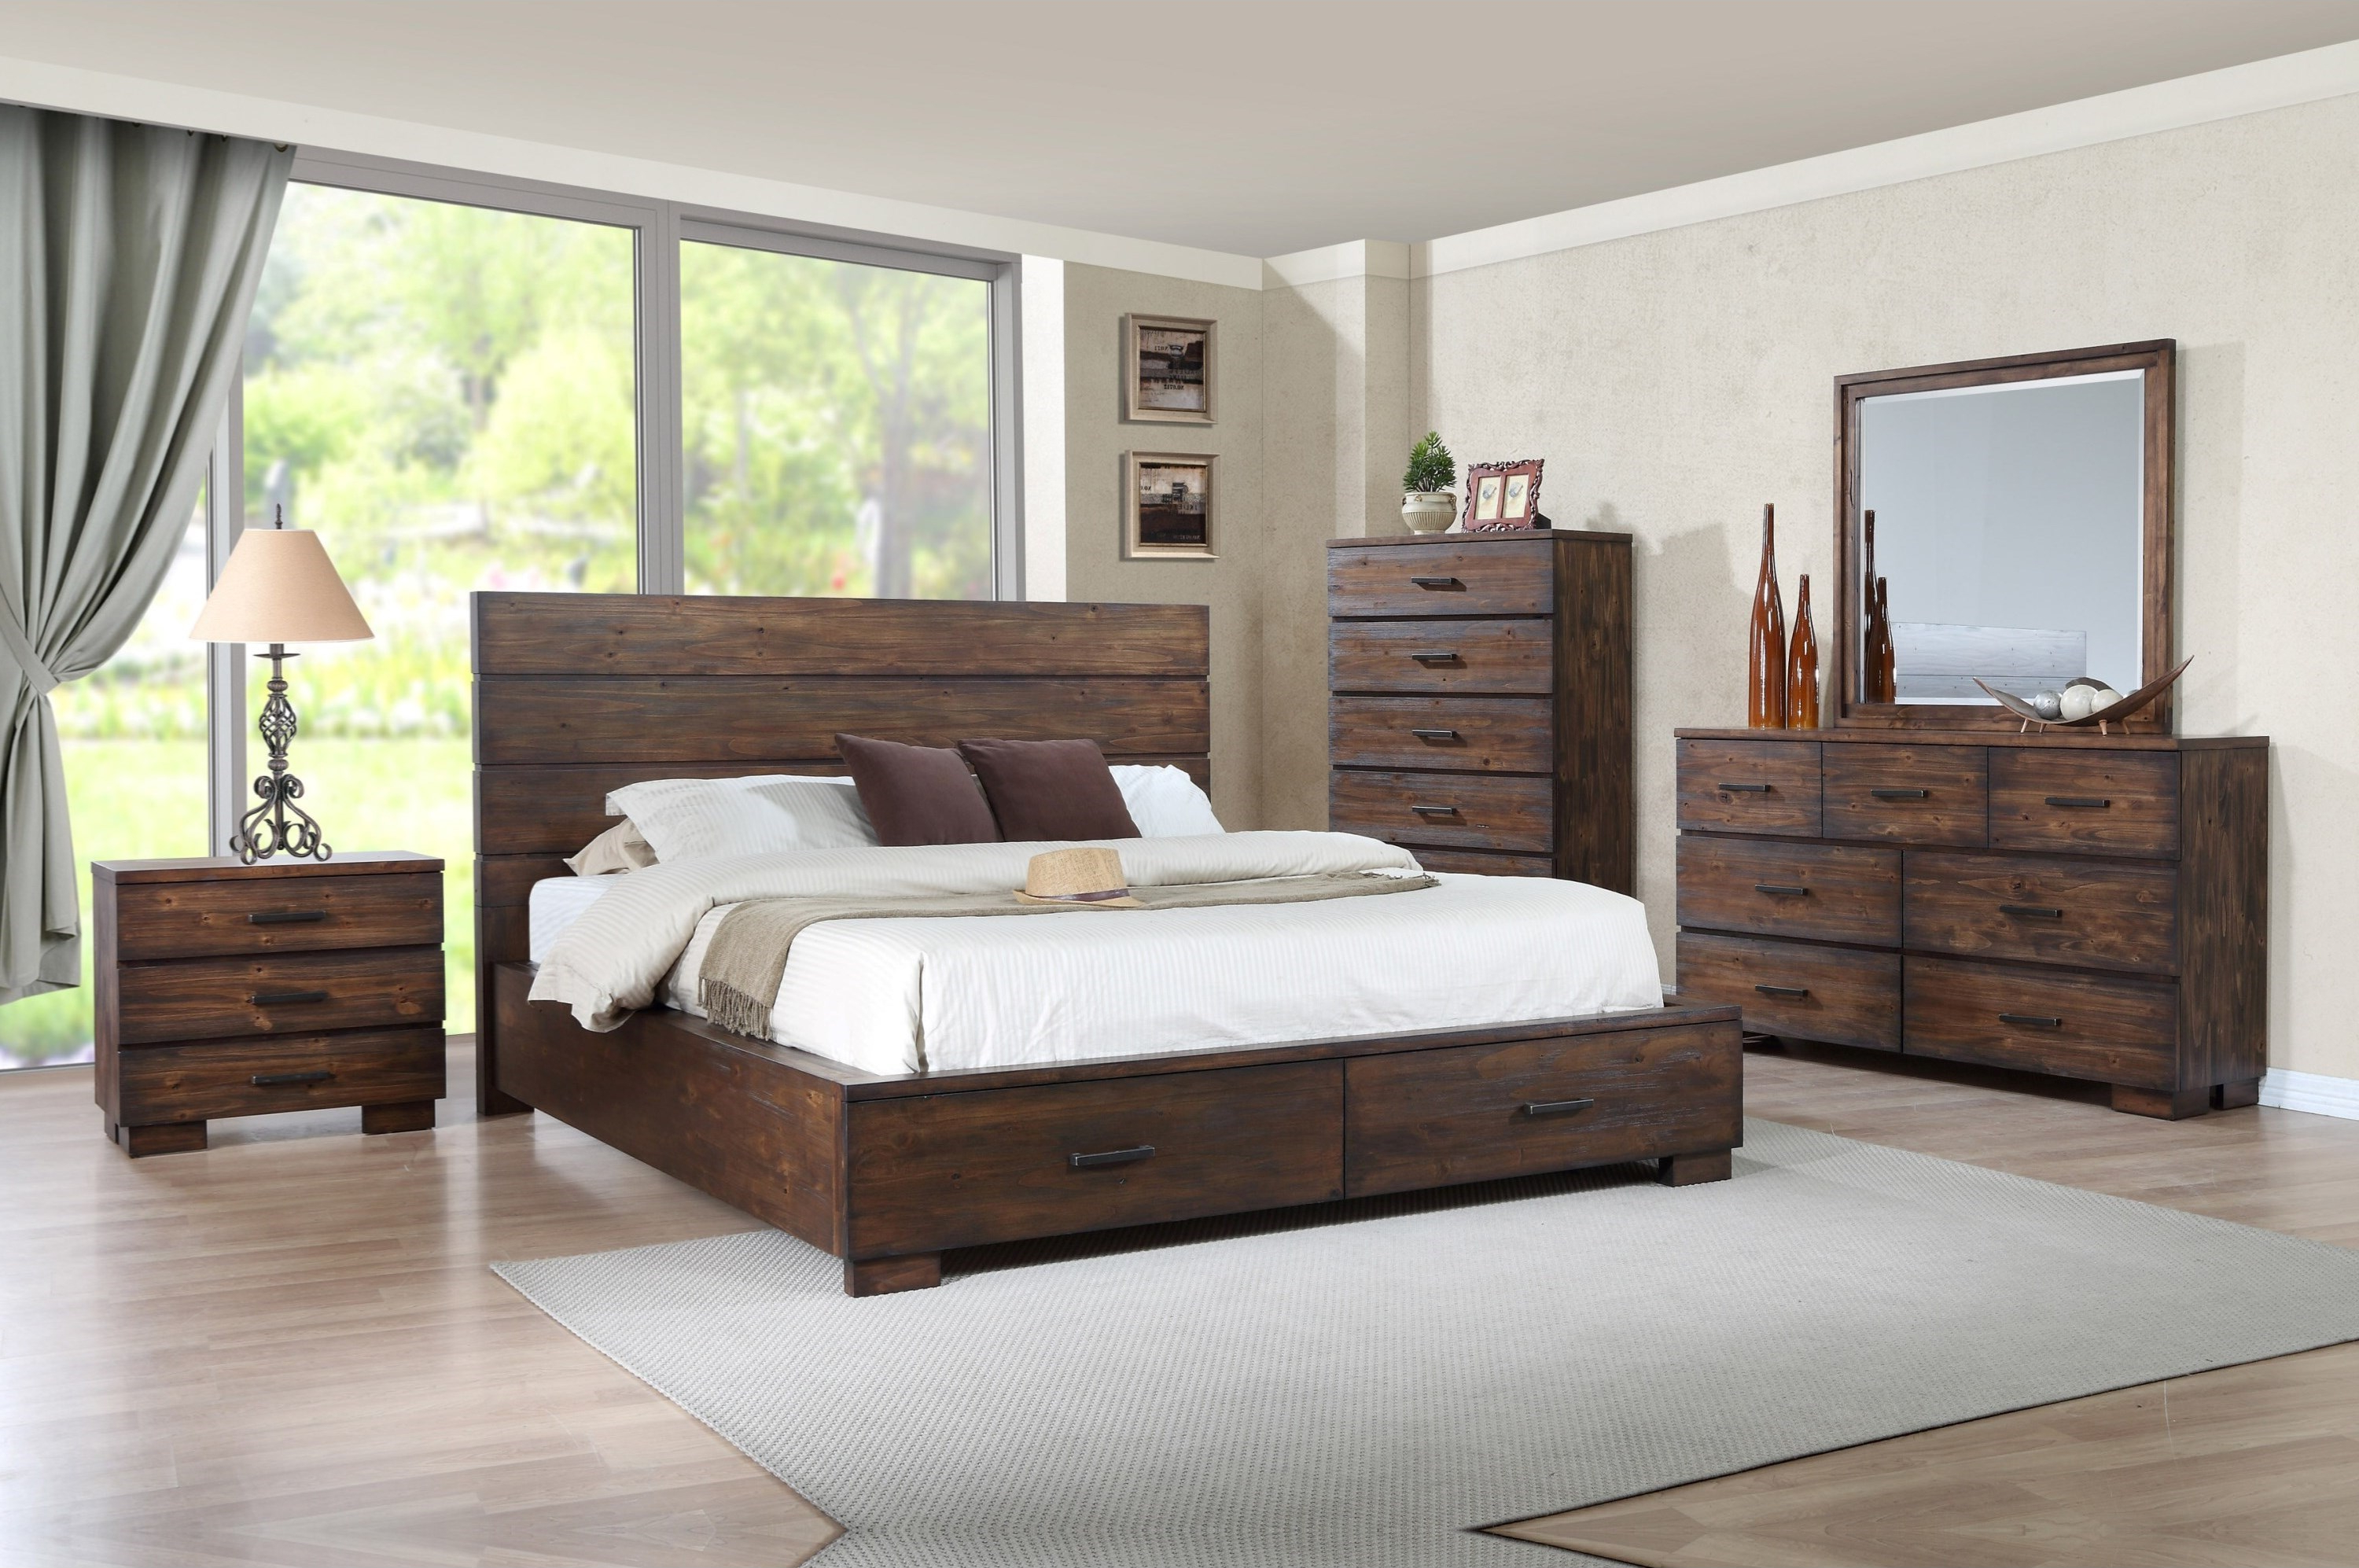 furniture clearance center storage suites 18426 | b8200